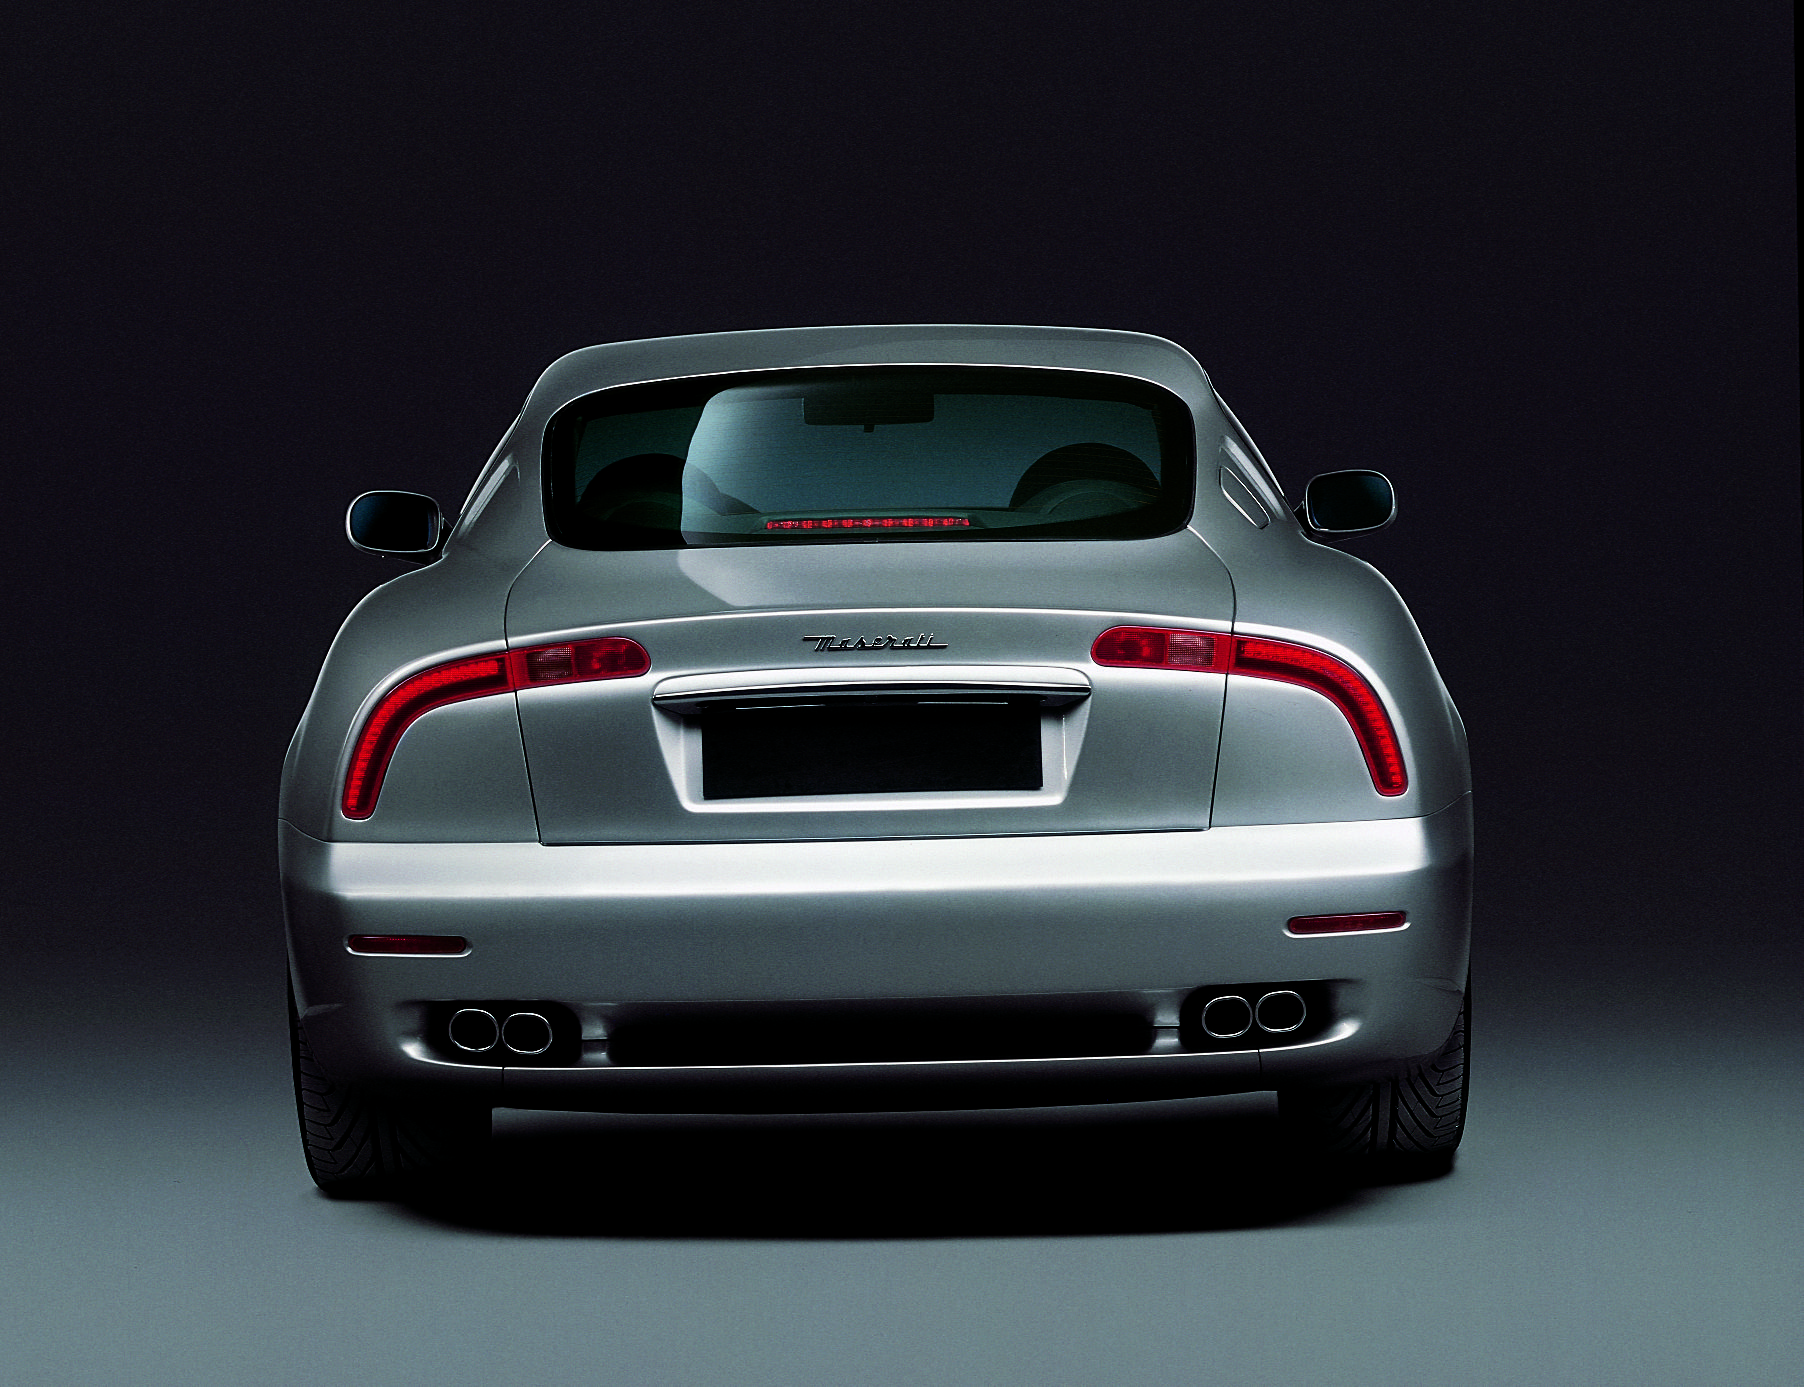 Maserati 3200 GT, factory-issued press photo, 1999 ...